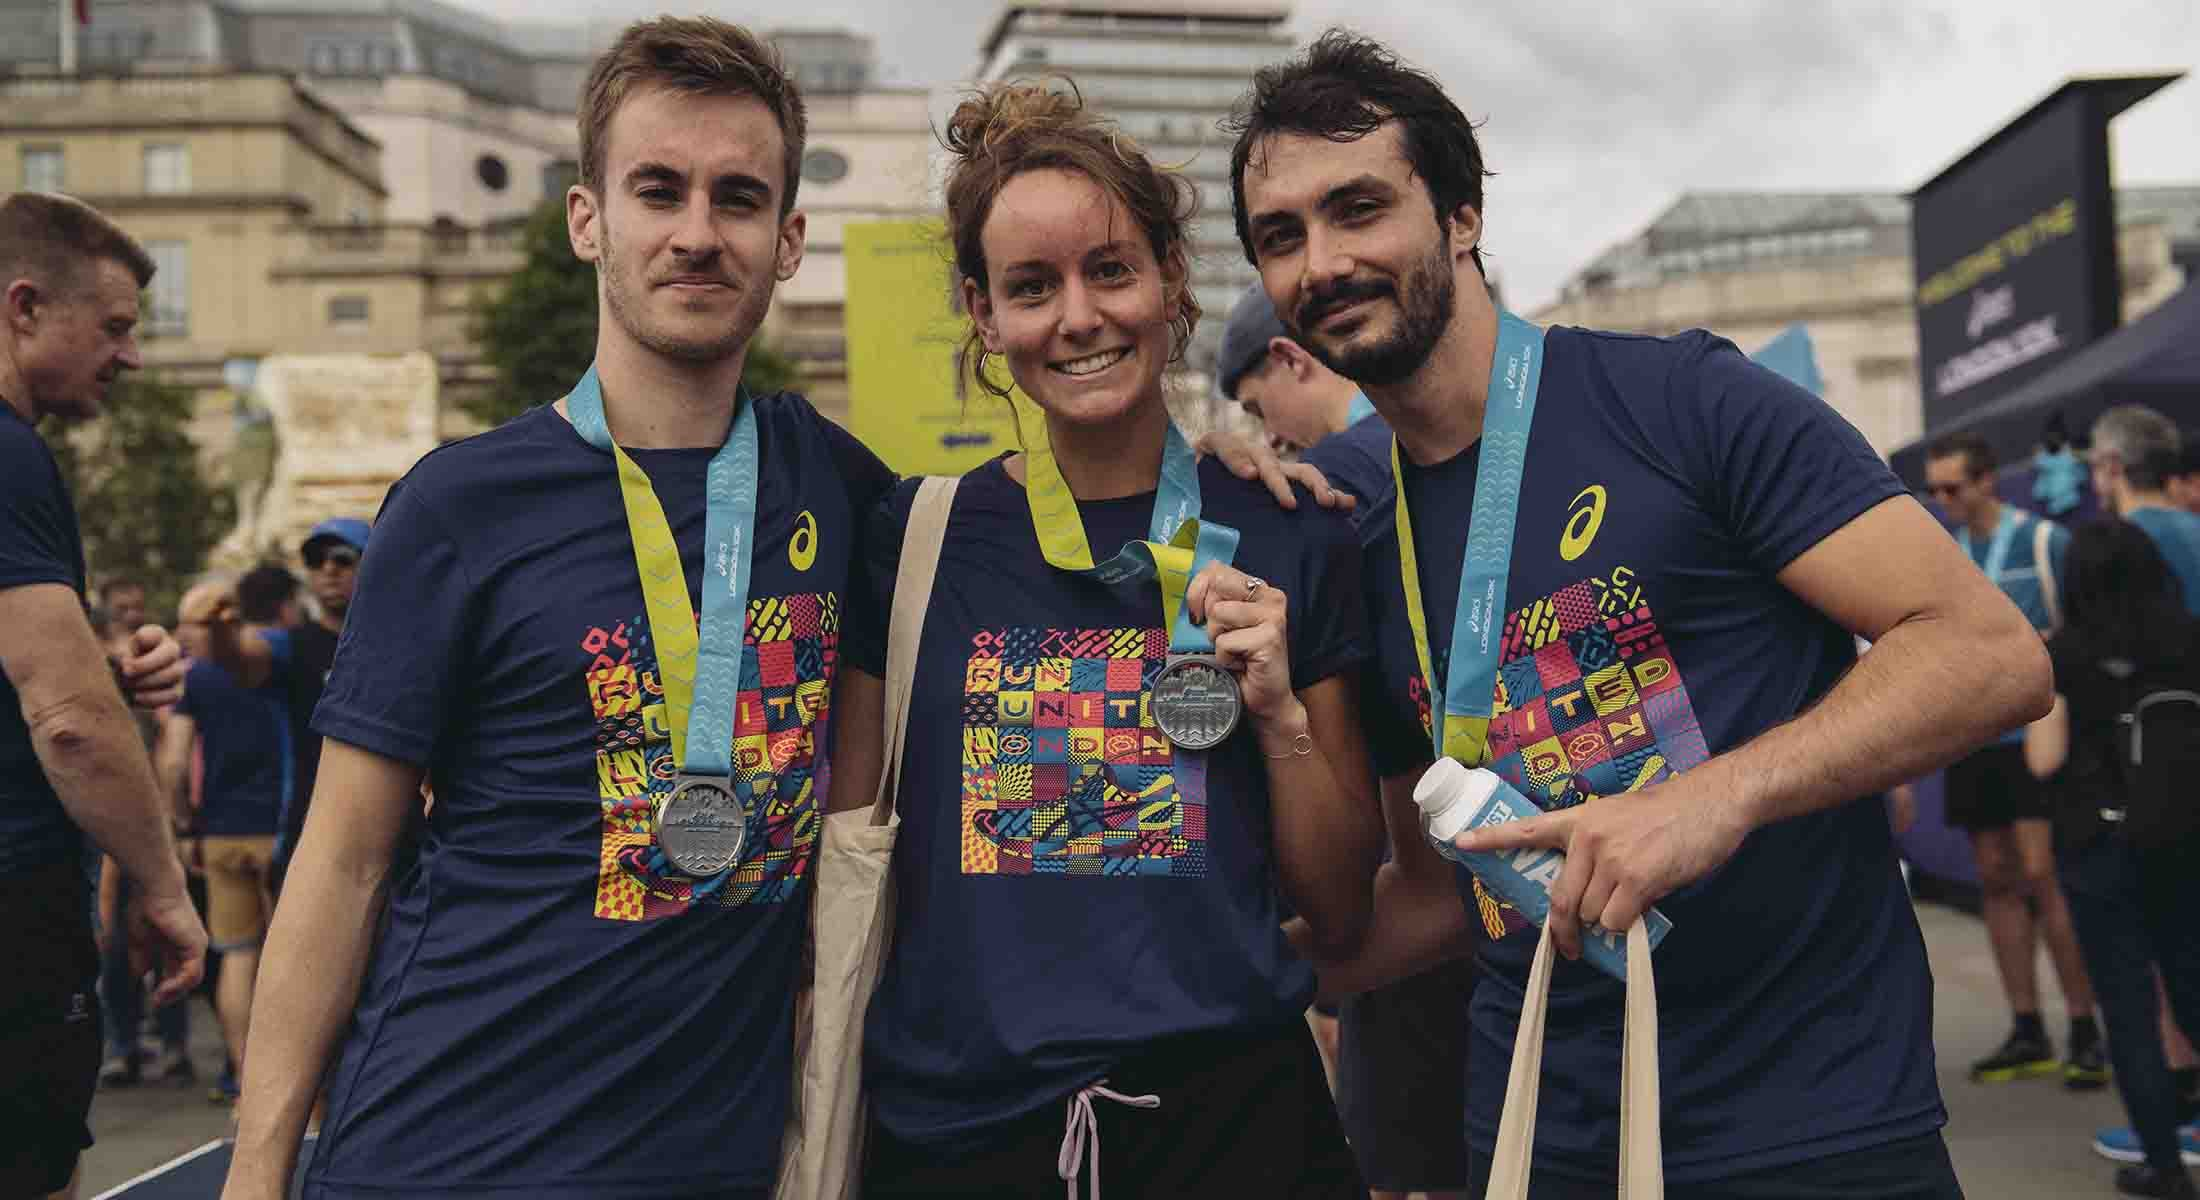 ASICS London 10K runners